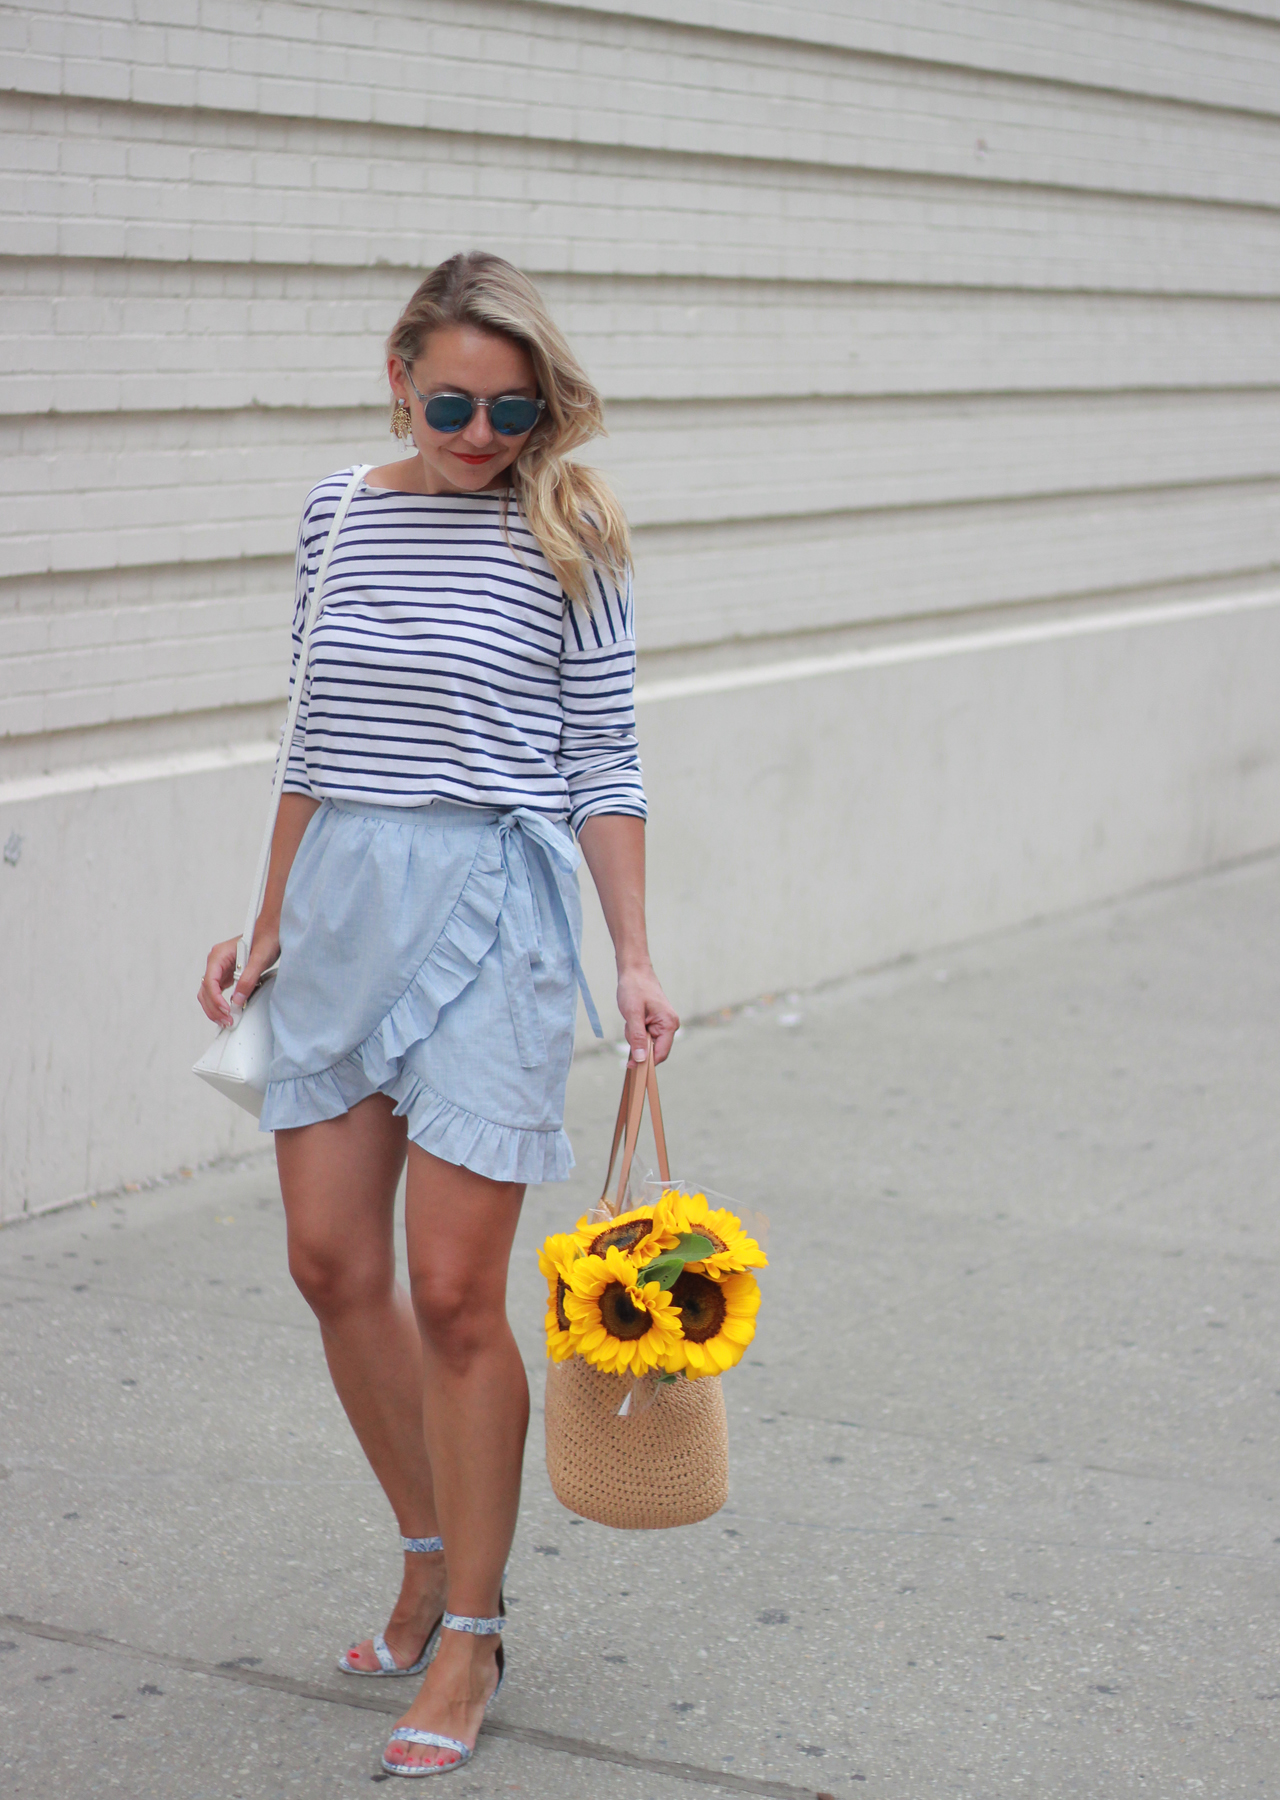 The Steele Maiden: Simple Summer Style in Madewell Wrap Skirt and Straw Bag